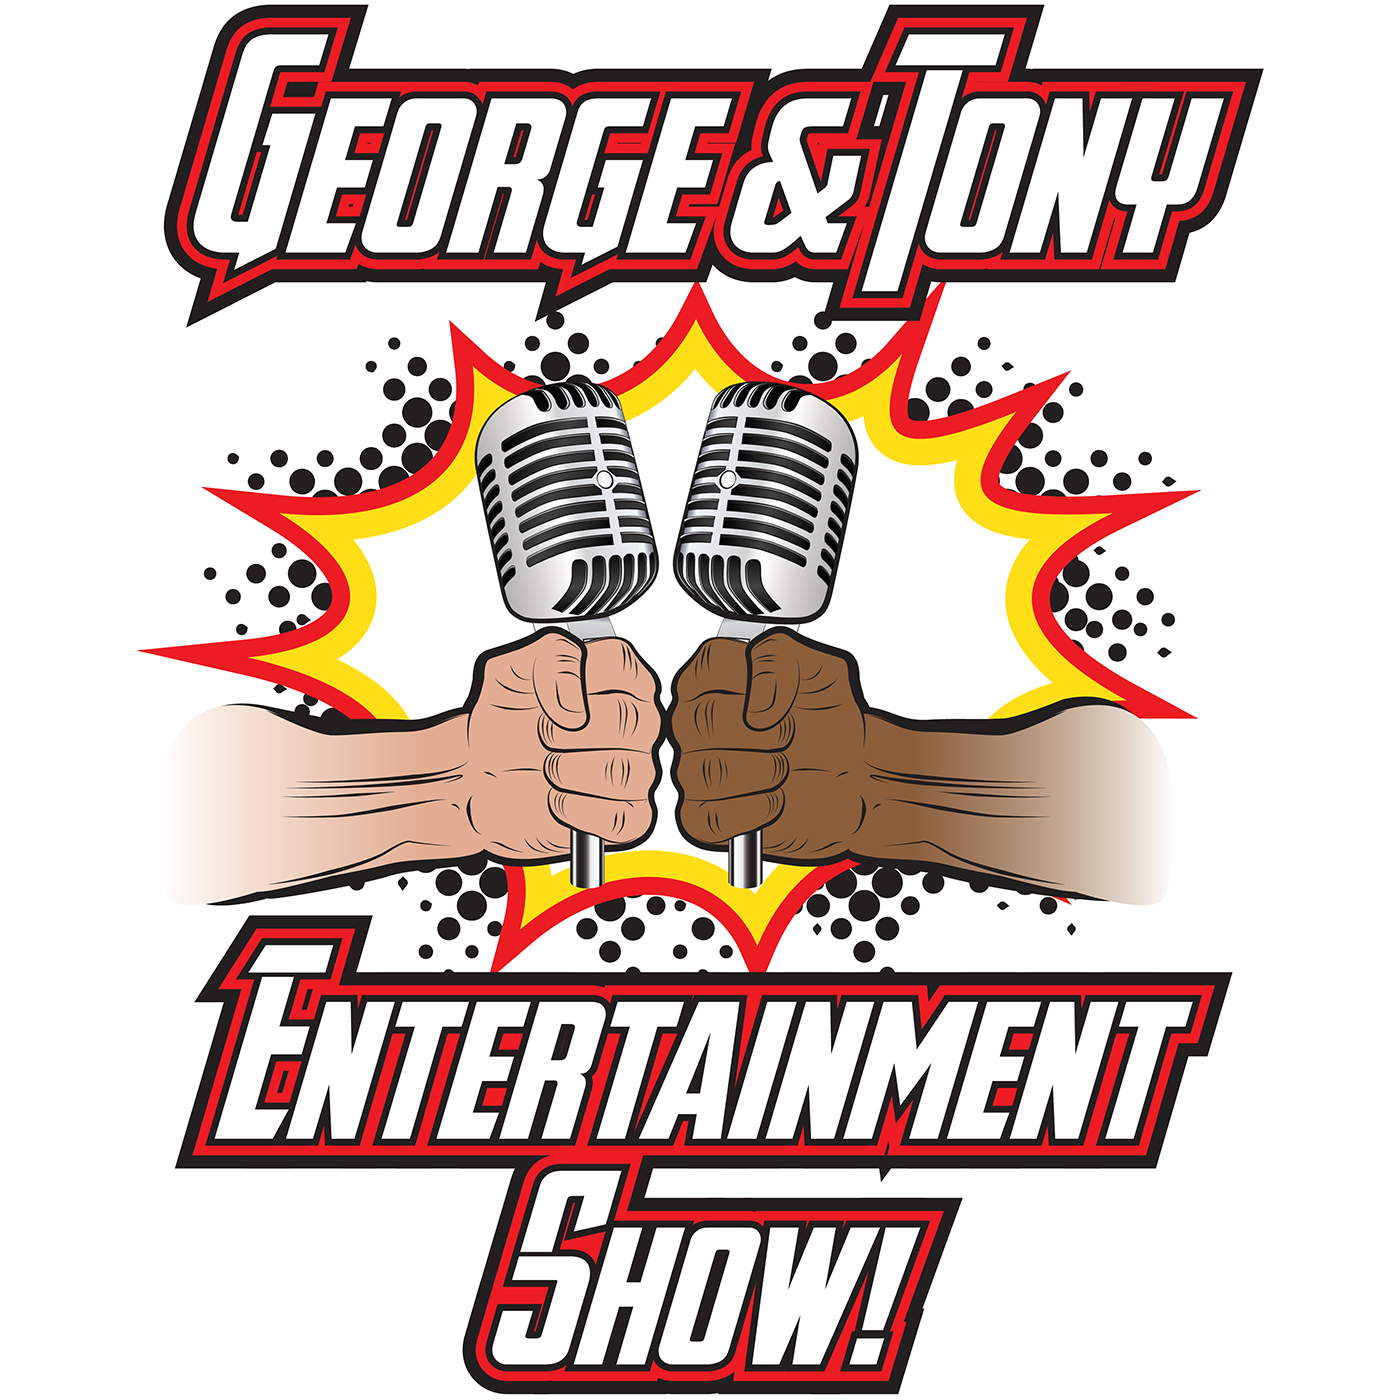 George and Tony Entertainment Show #124